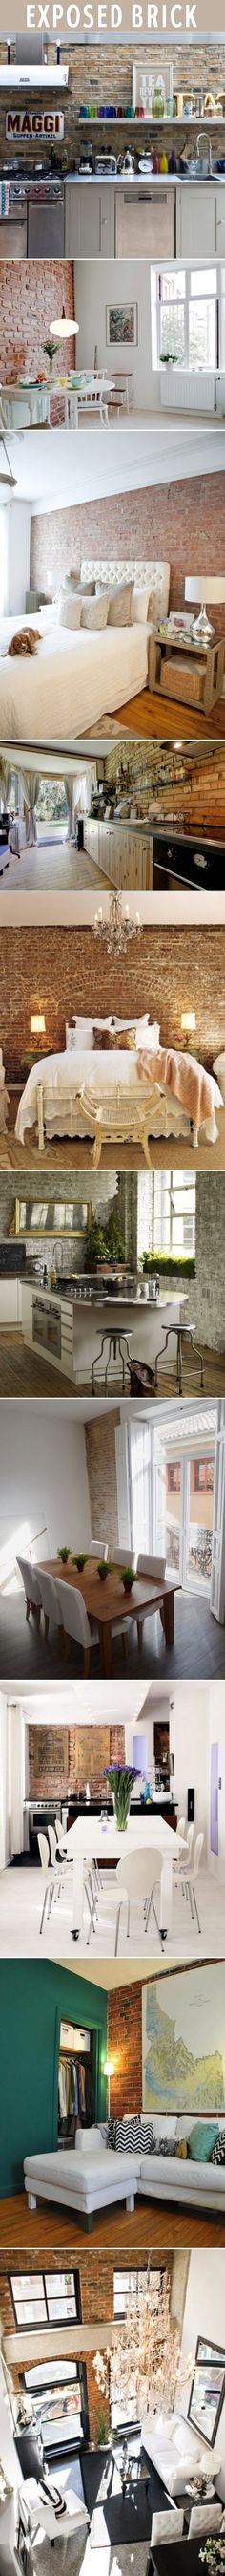 Exposed brick interior. YES PLEASE.